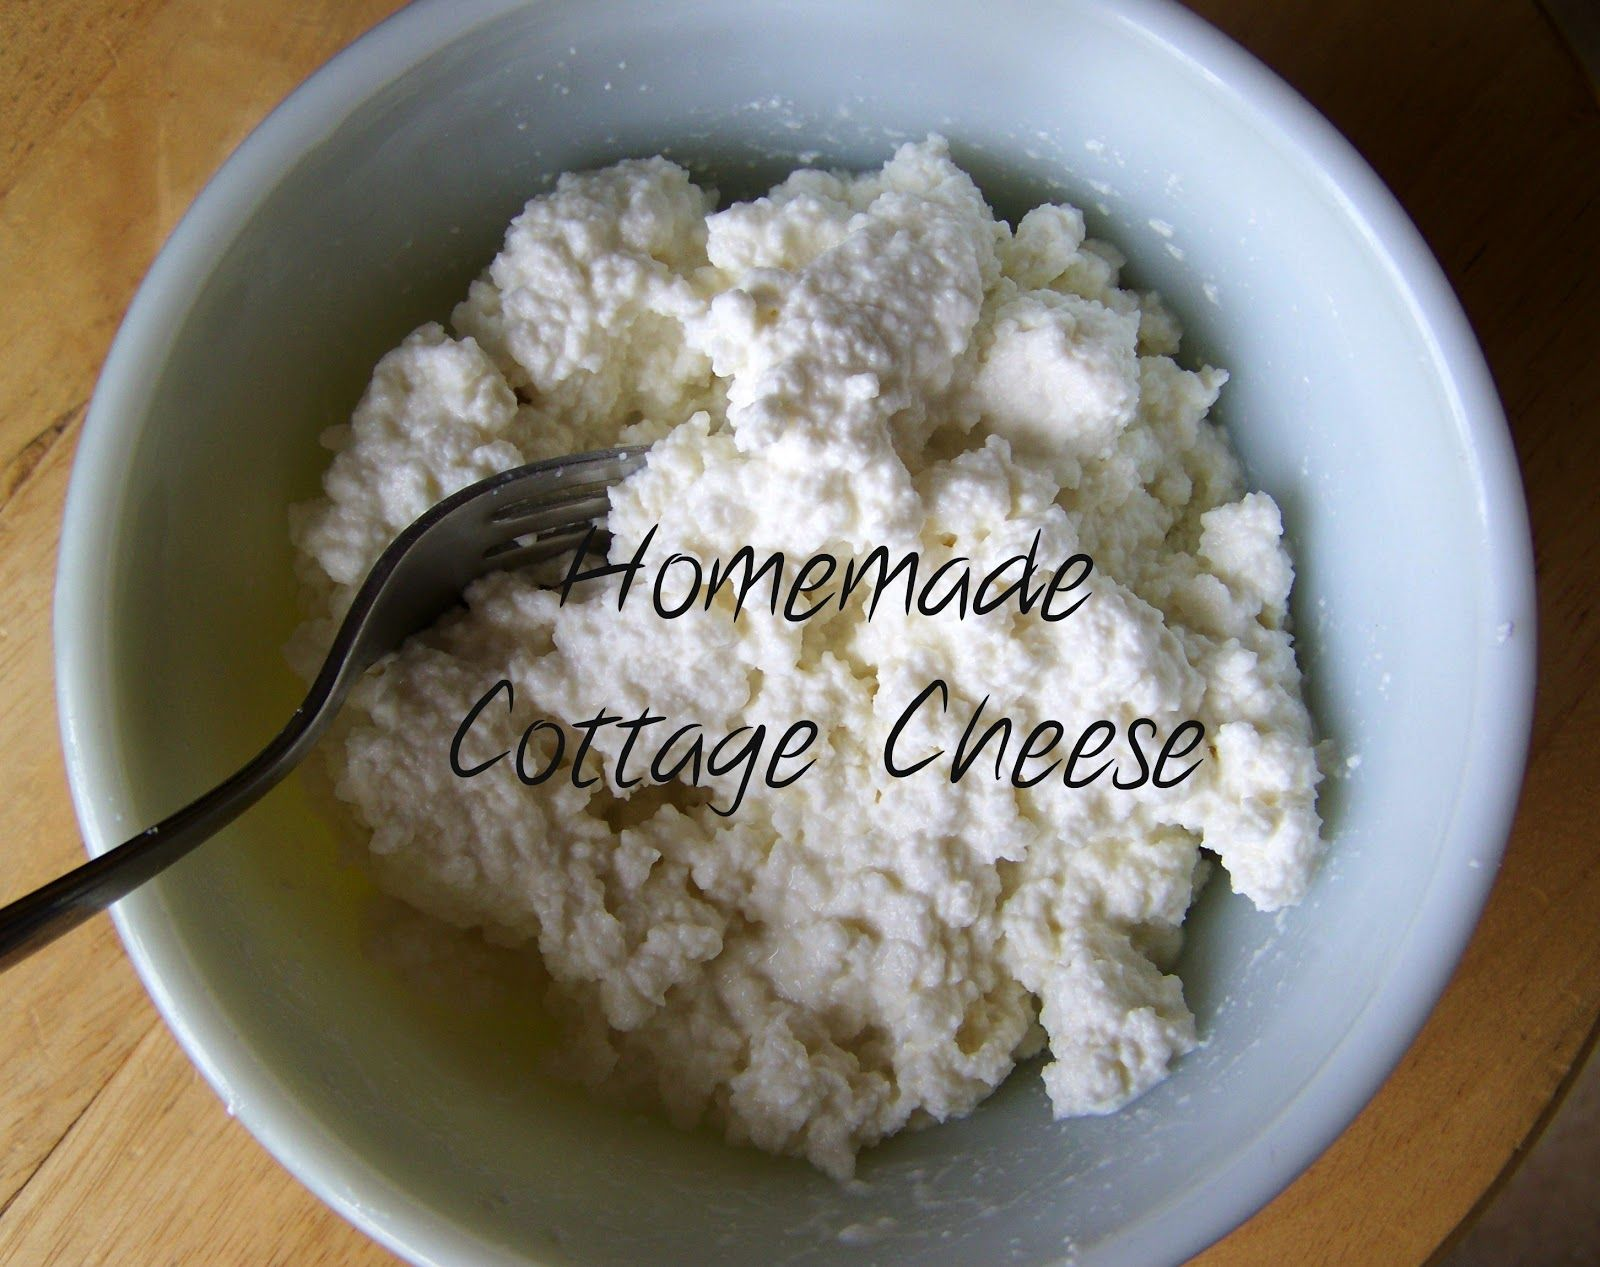 Perfect Poppy Juice: Easy And Delicious Homemade Cottage Cheese (without Rennet)